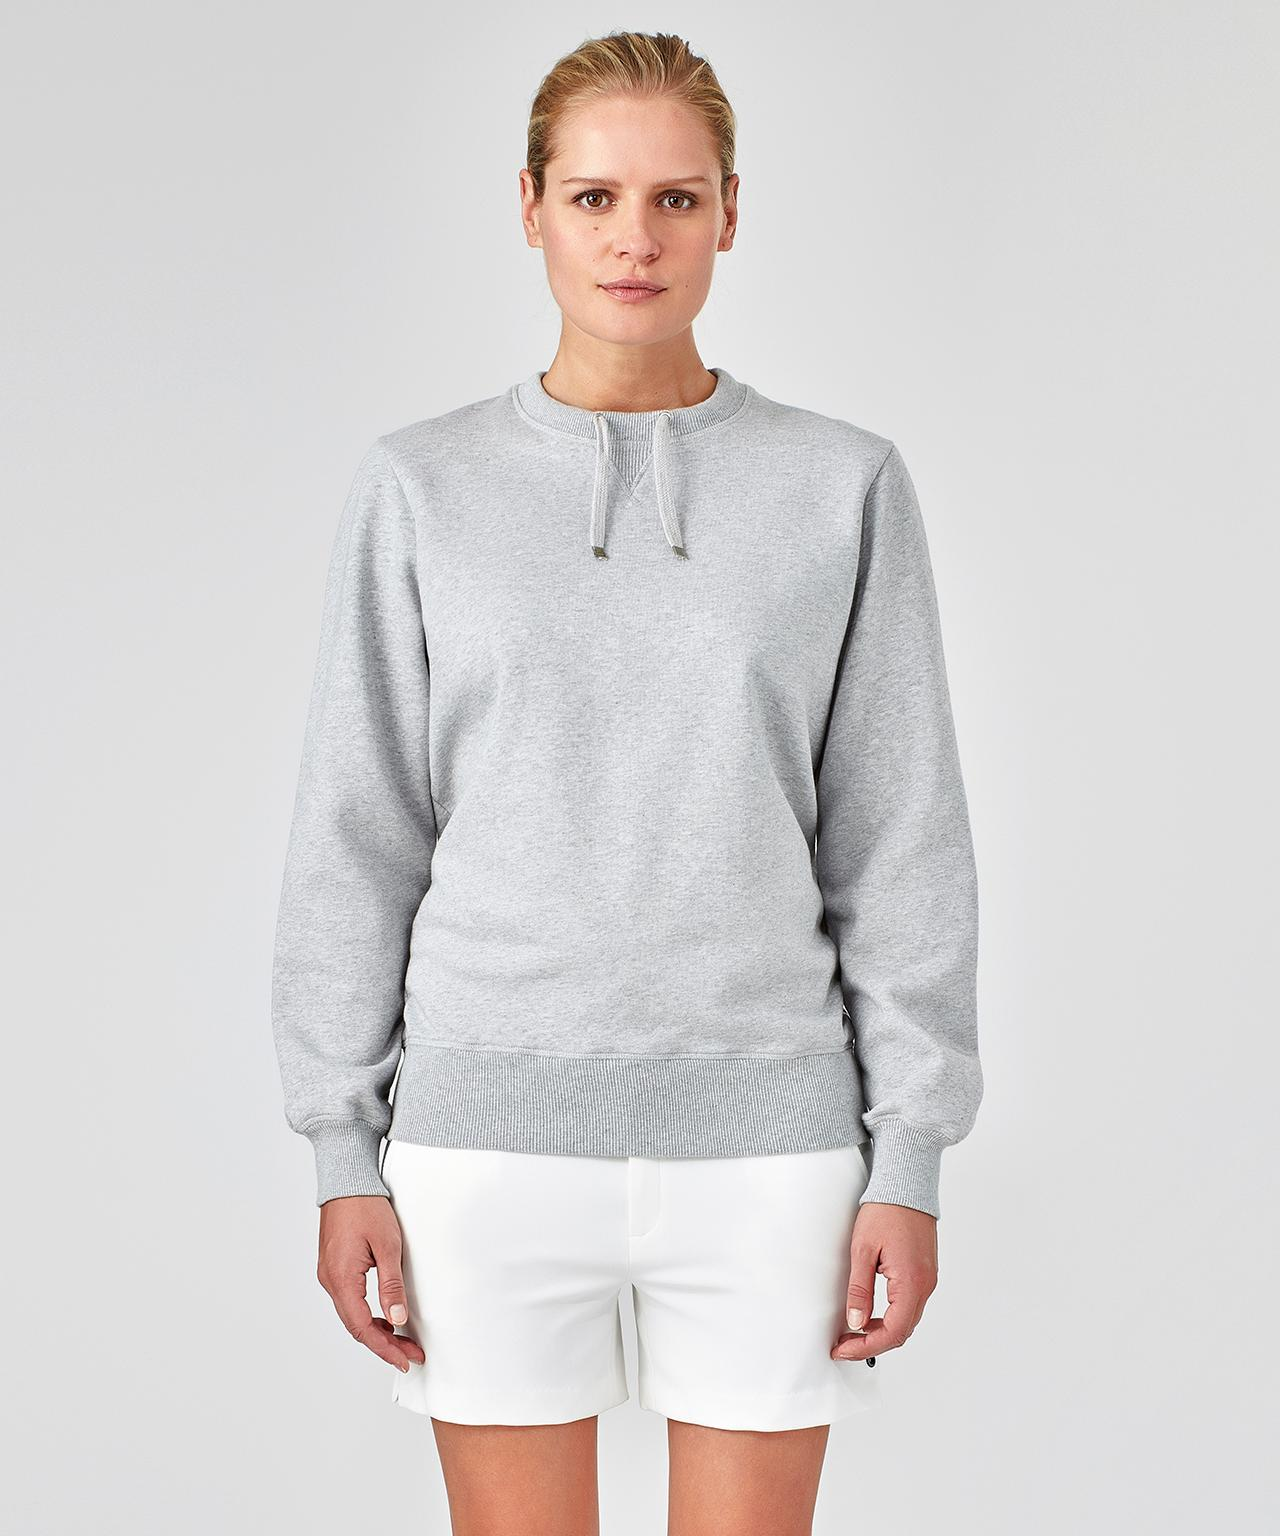 Sweatshirt Drawstring His For Her - grey melange